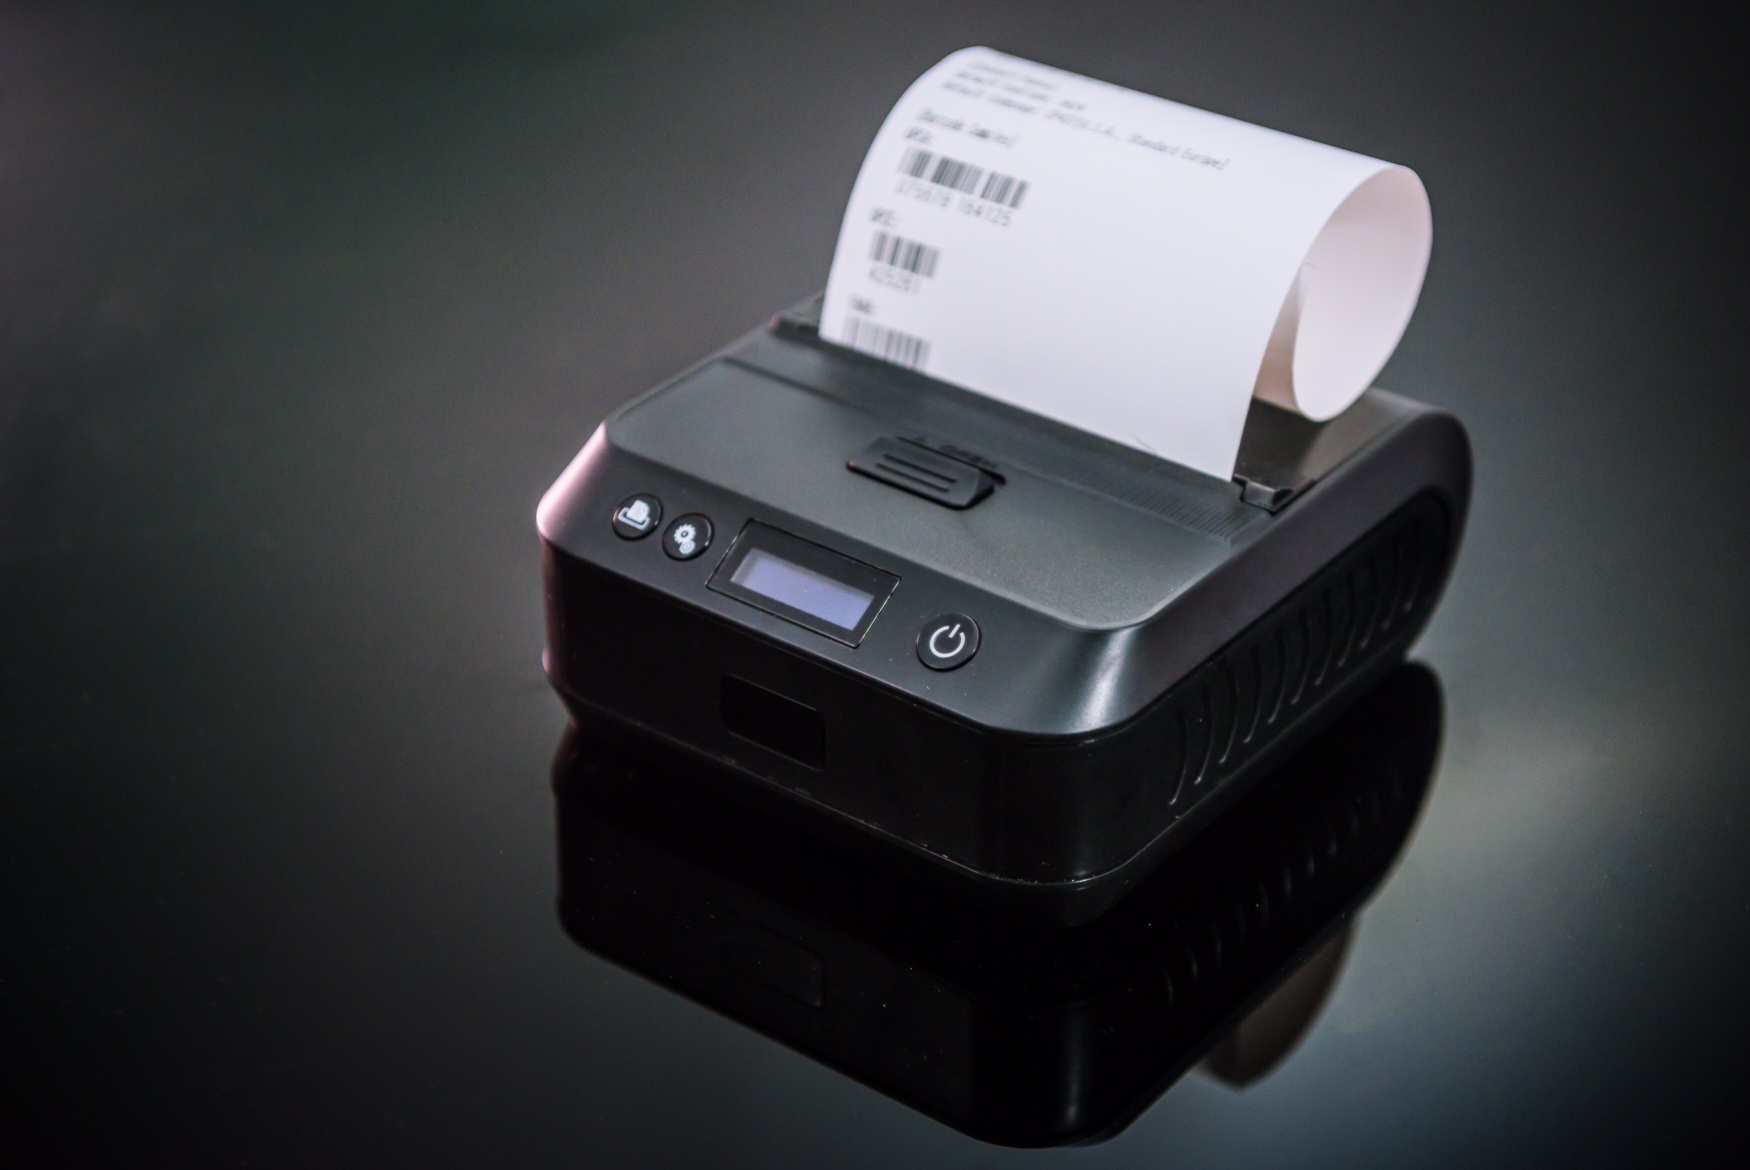 PT-3 80mm Mobile Printer